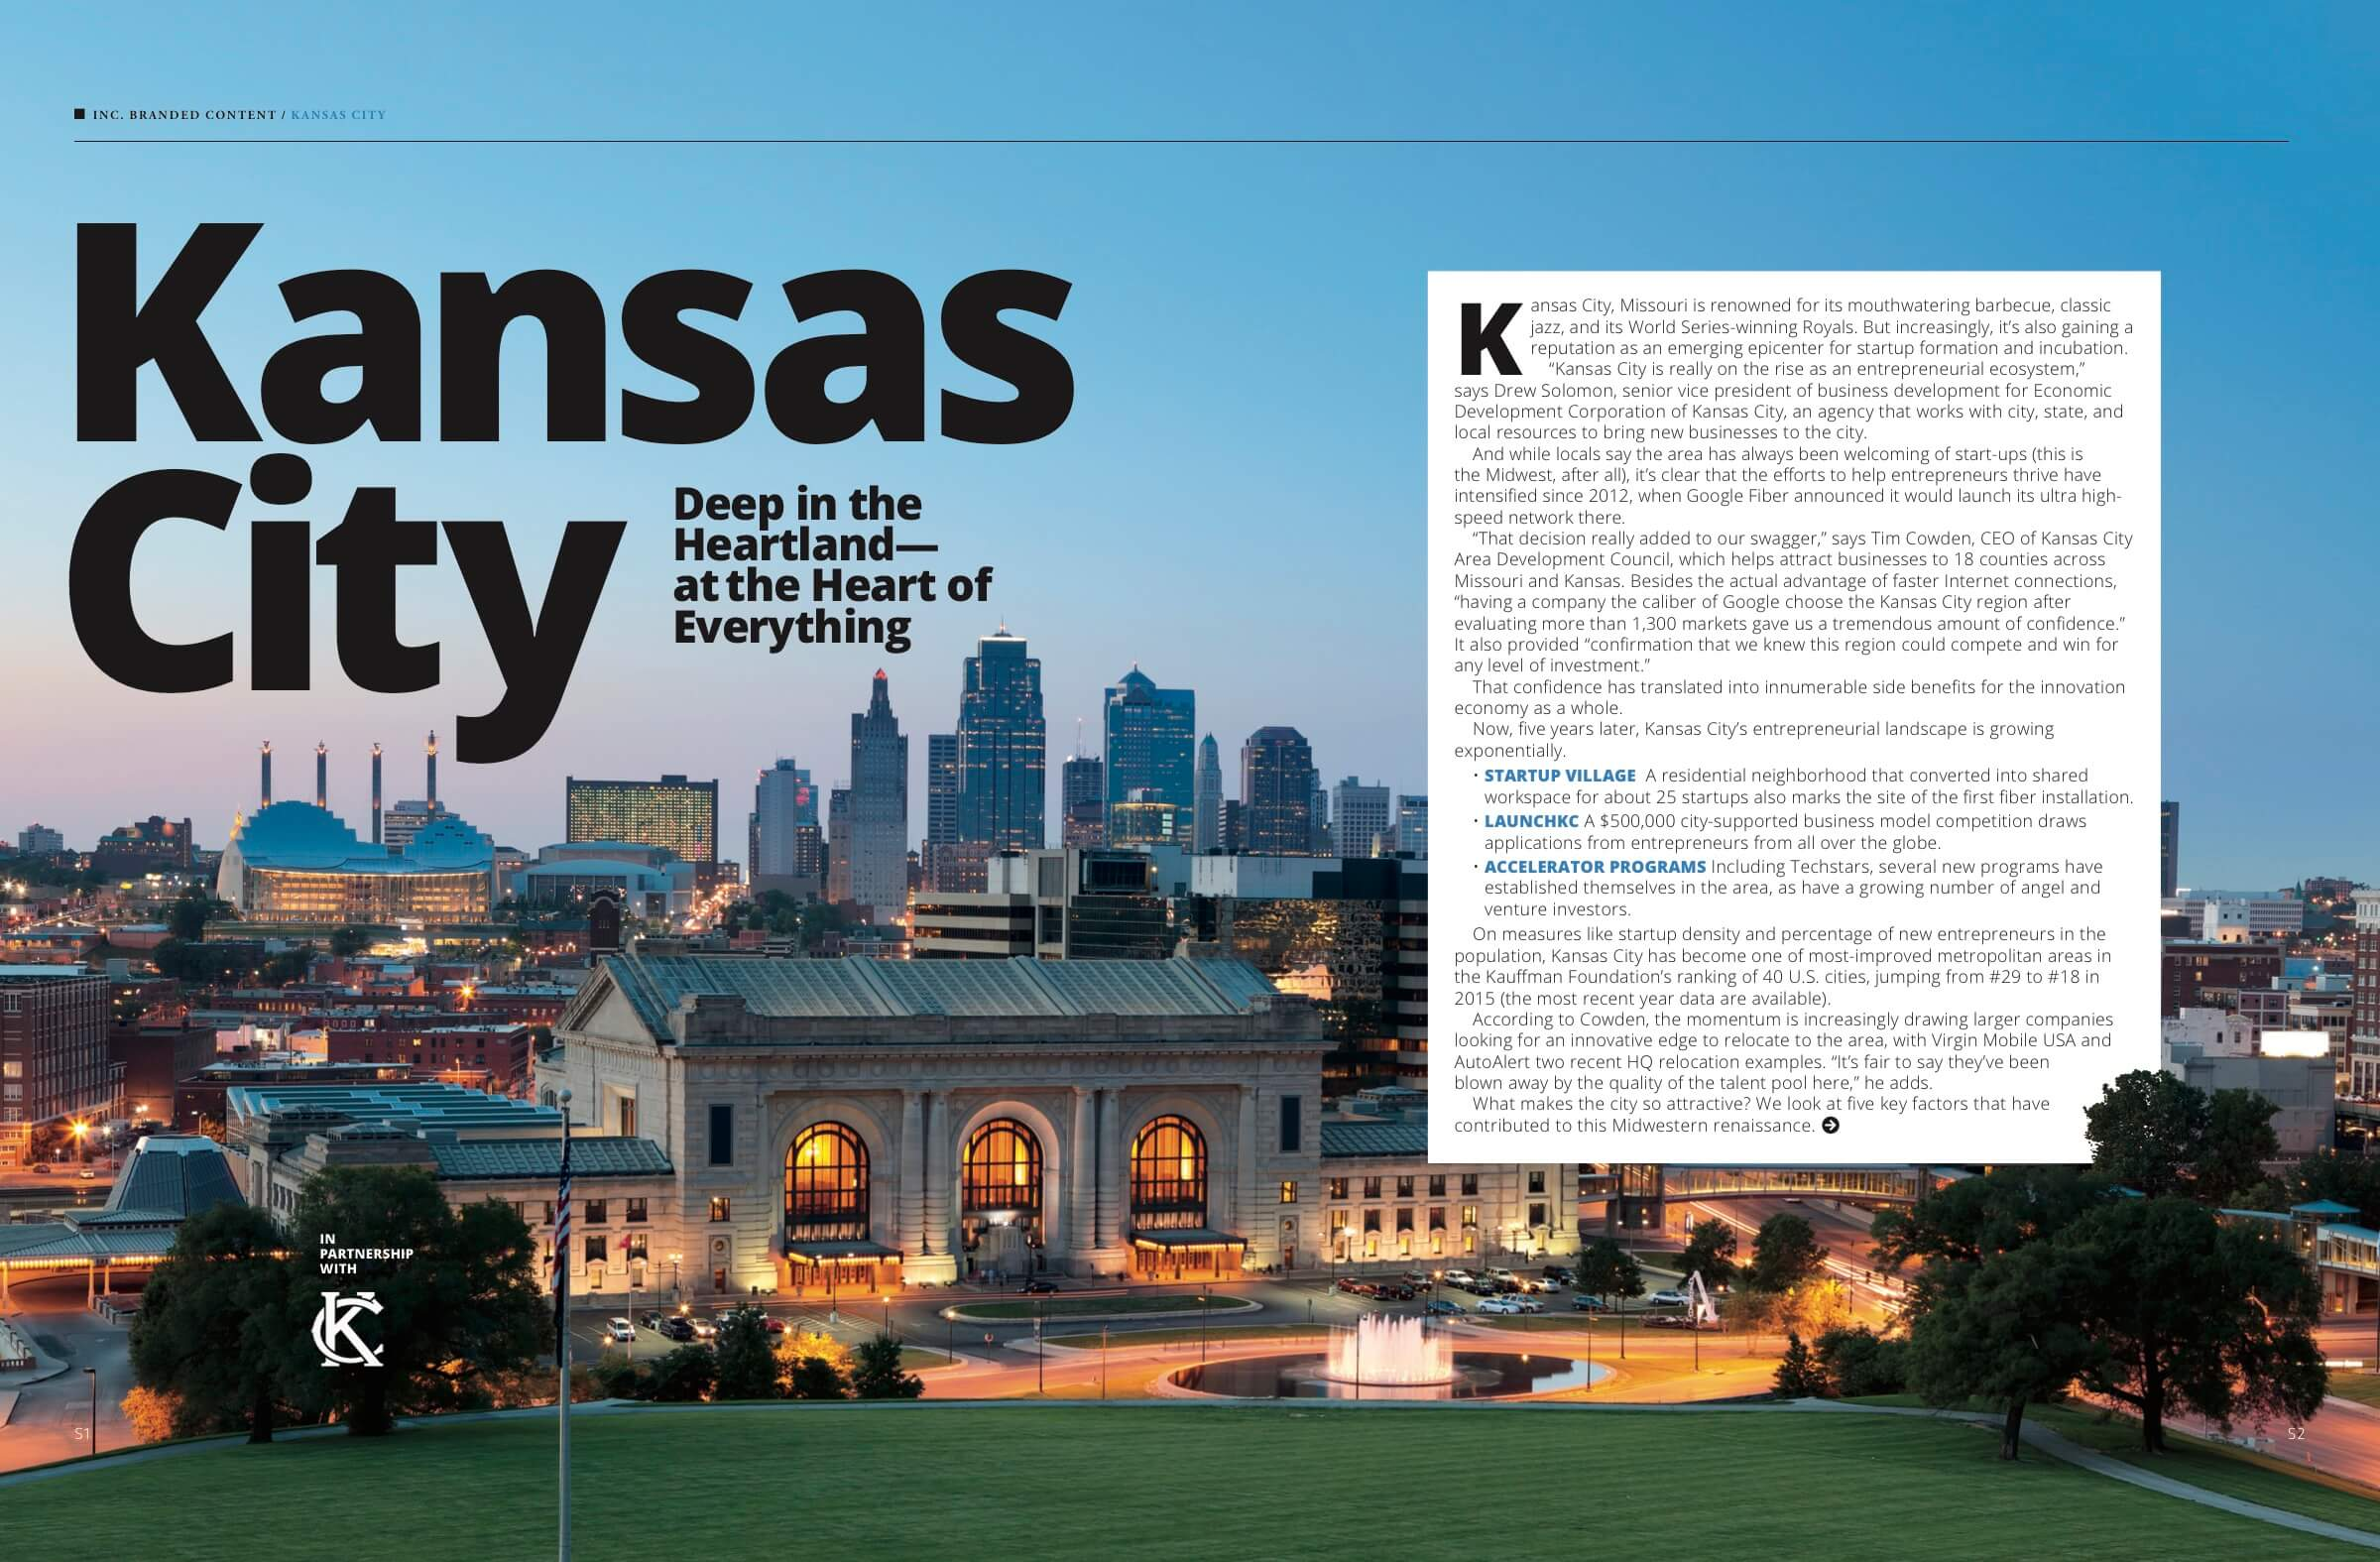 http://www.incimages.com/branded-content/KansasCitysection2017.jpg